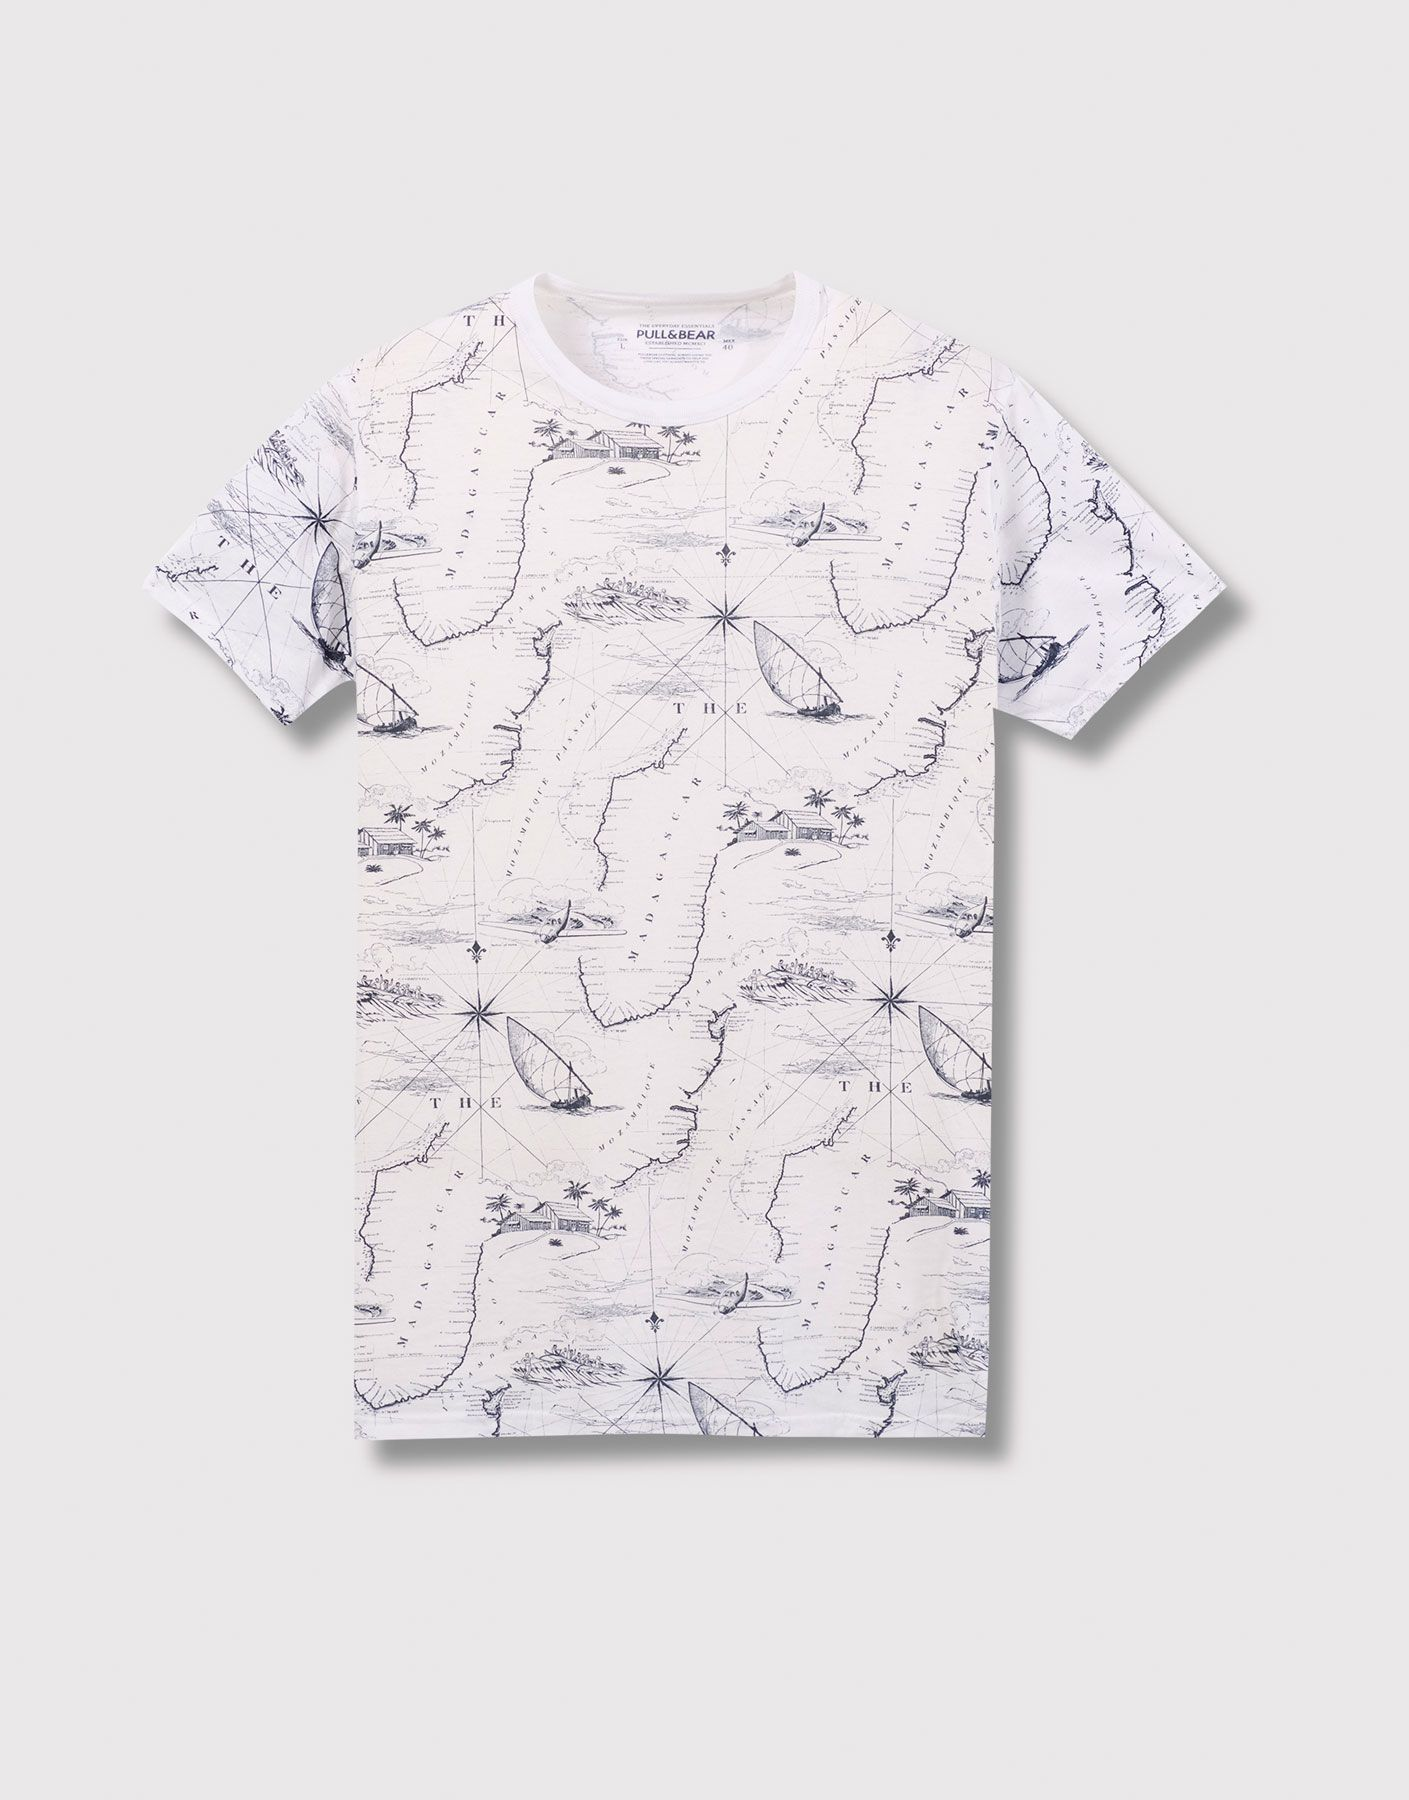 ade77da7 ALL-OVER PRINT T-SHIRT - T-SHIRTS AND POLO SHIRTS - MAN - PULL&BEAR Albania